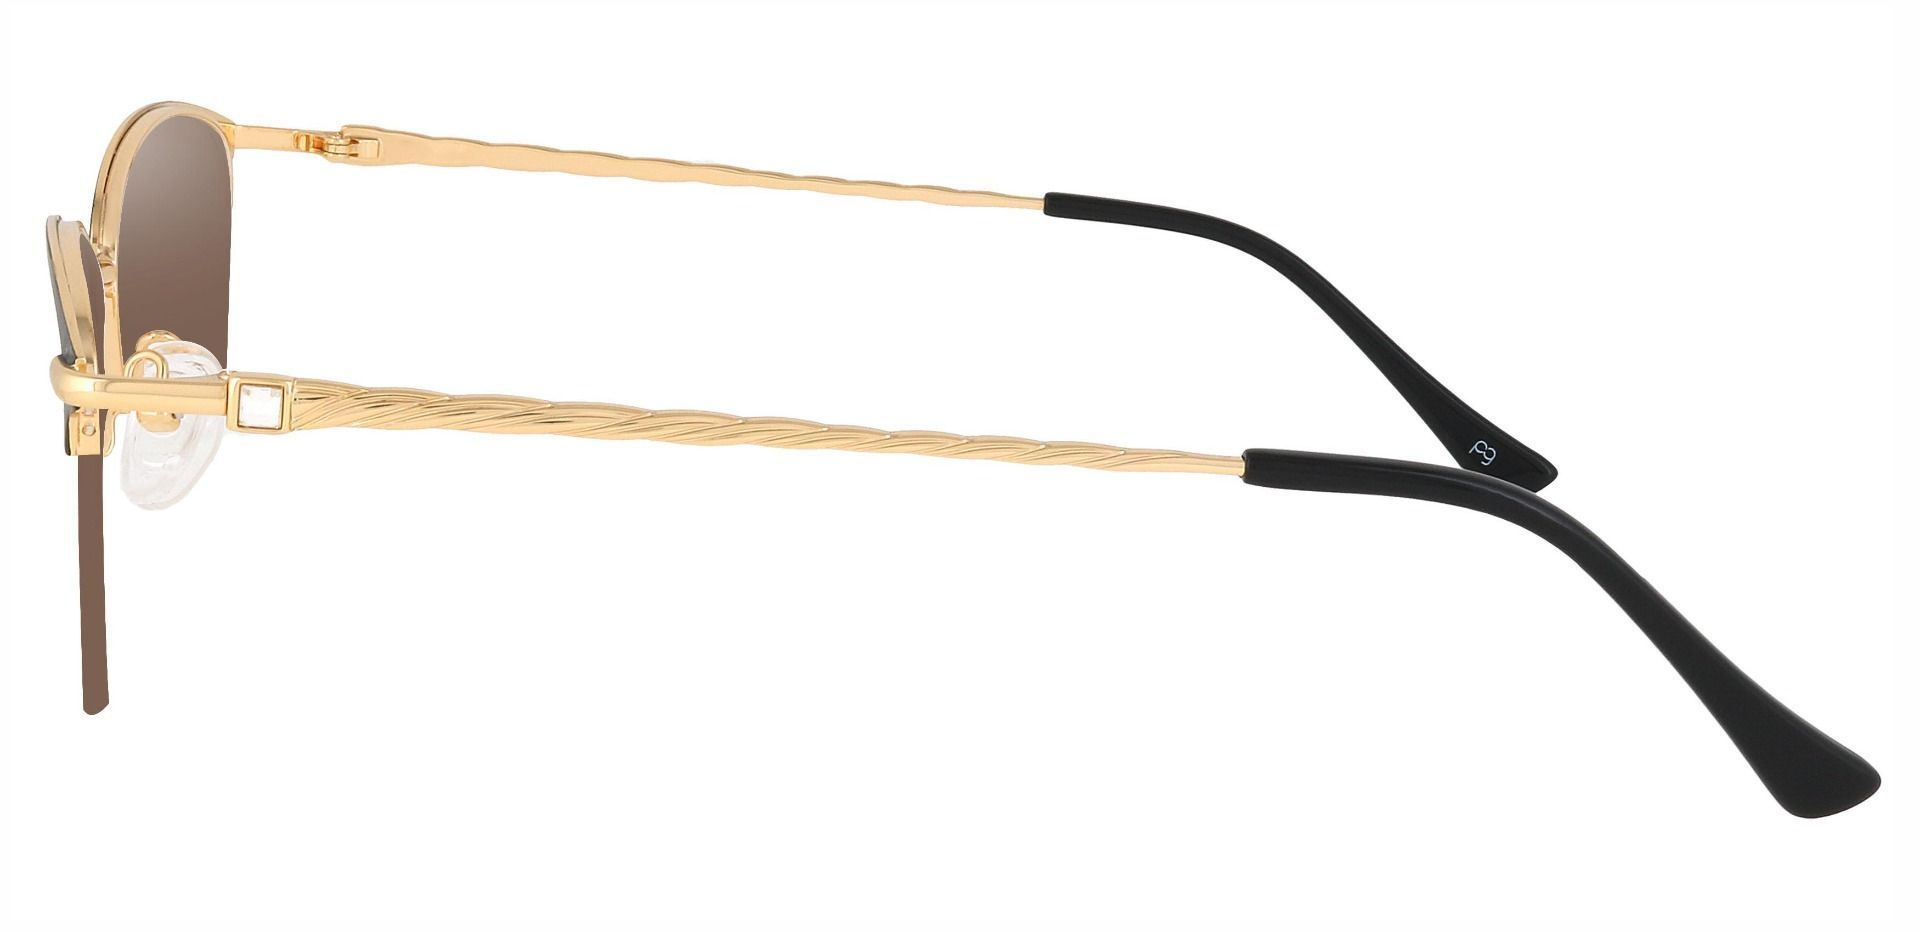 Marigold Rectangle Non-Rx Sunglasses - Black Frame With Brown Lenses